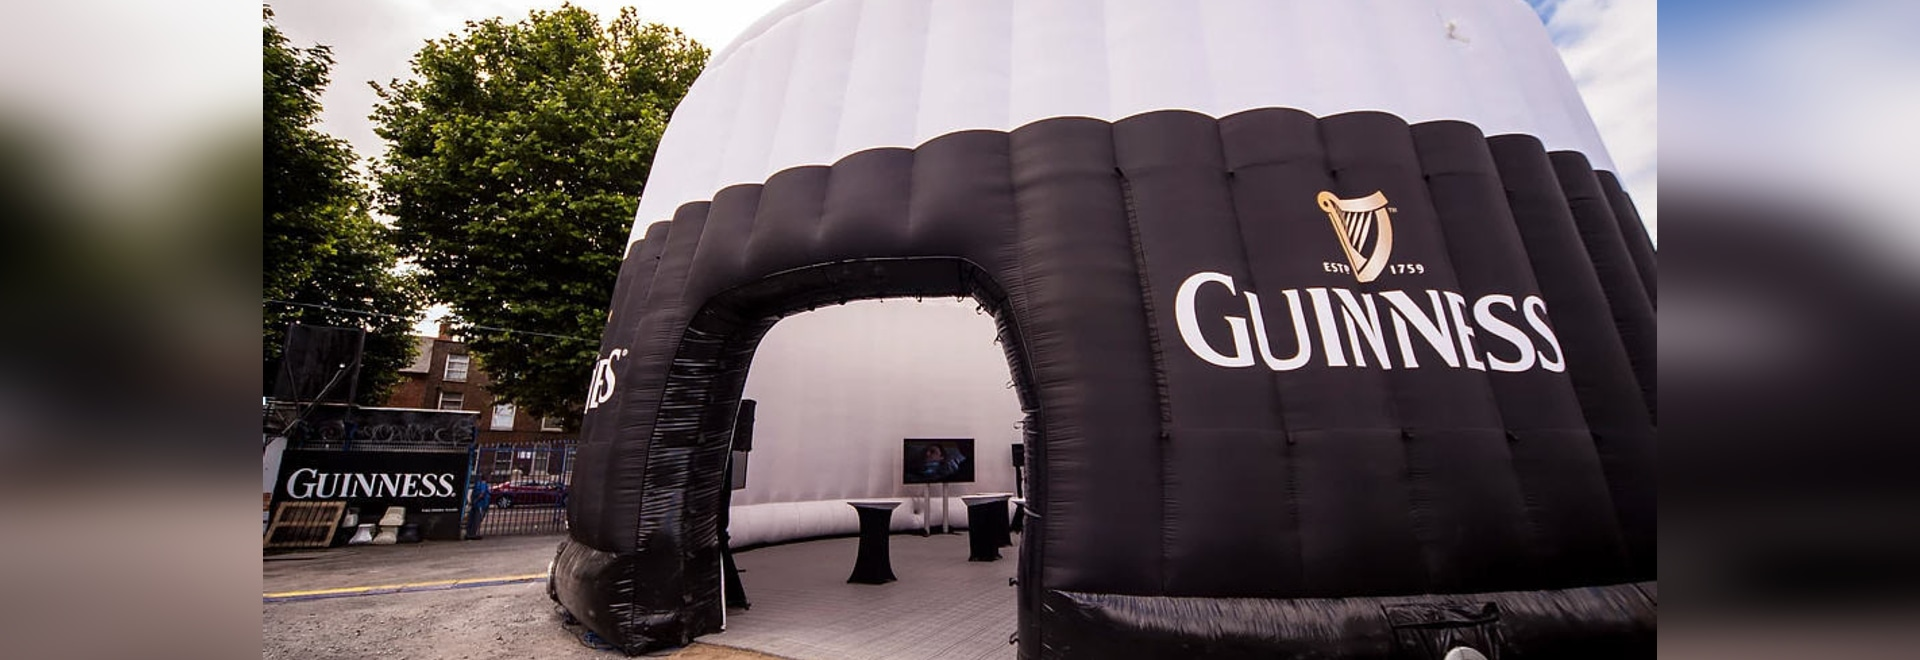 Guinness Fan Zone- inflatable structure for events Studio Soufflé